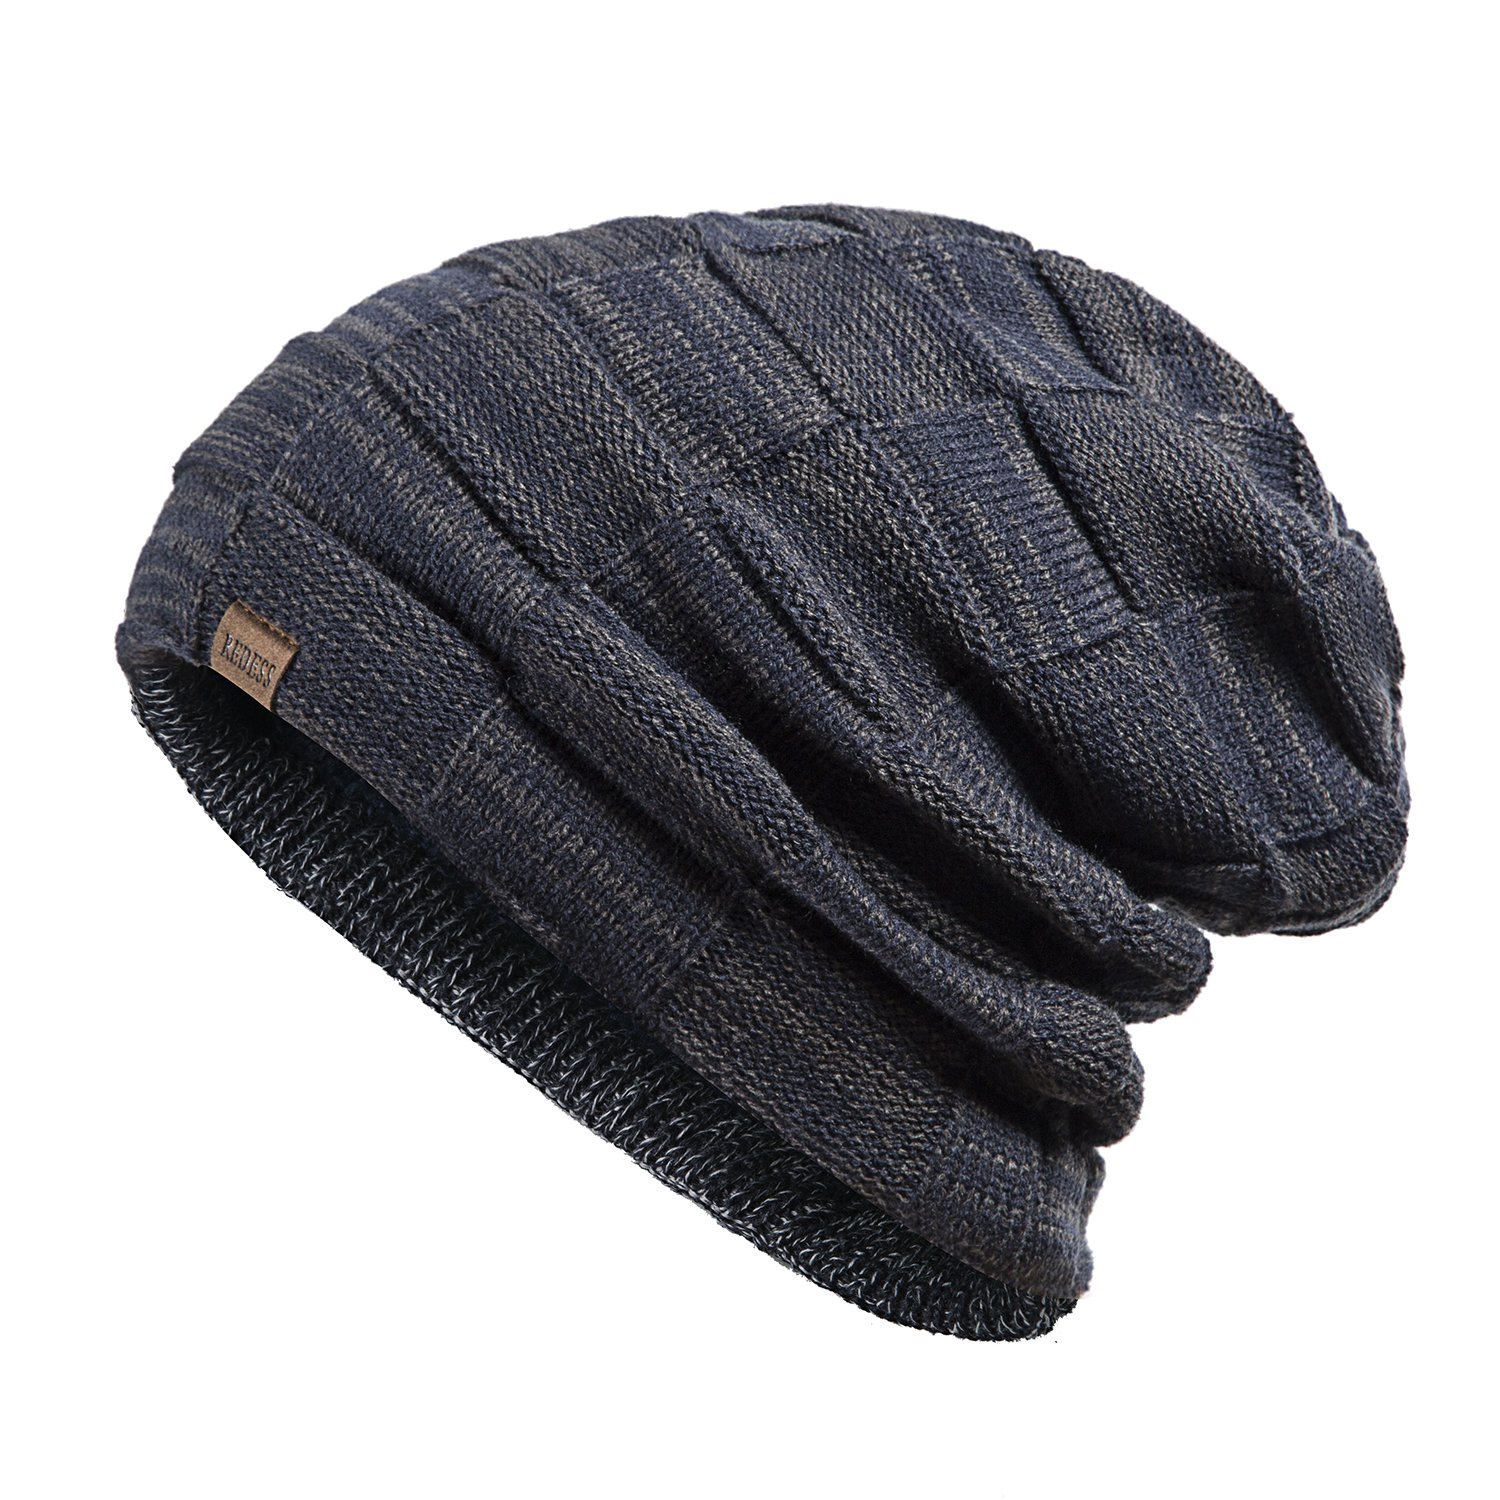 Slouchy Long Oversized Beanie Hat for Women and Men f448e5ee1532